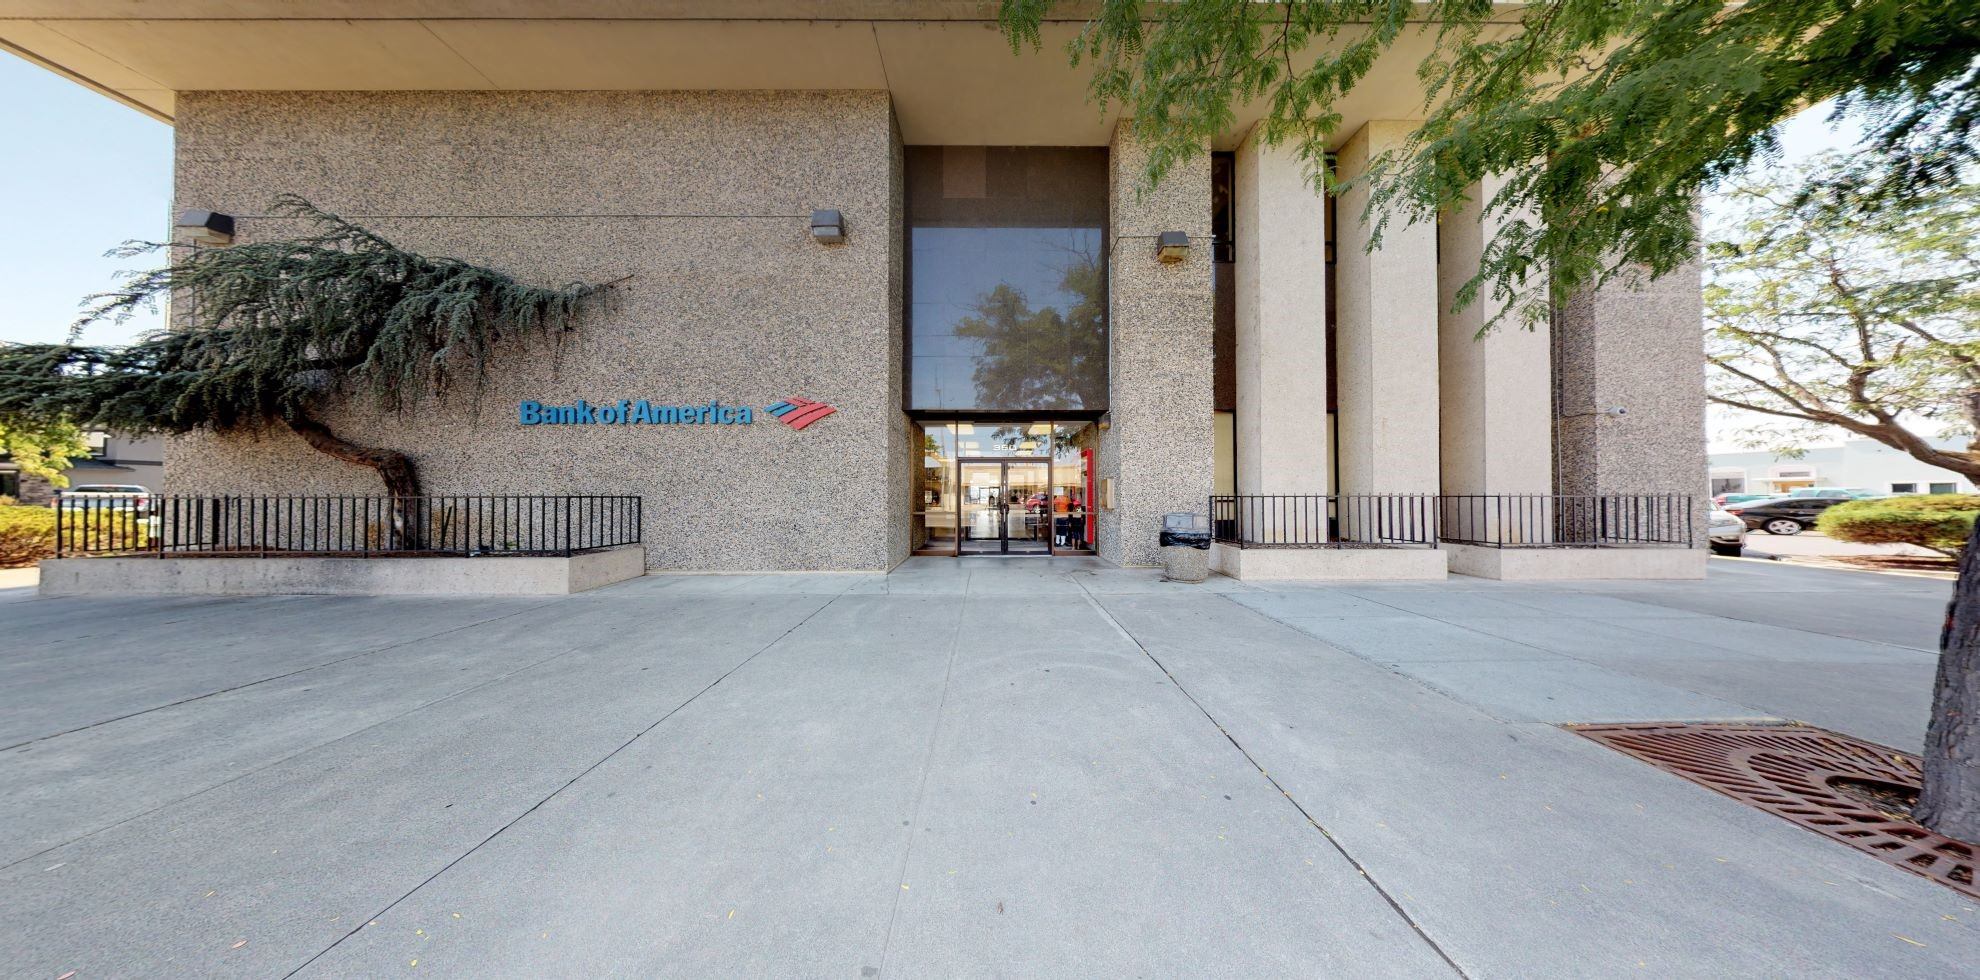 Bank of America financial center with drive-thru ATM   350 W Lewis St, Pasco, WA 99301